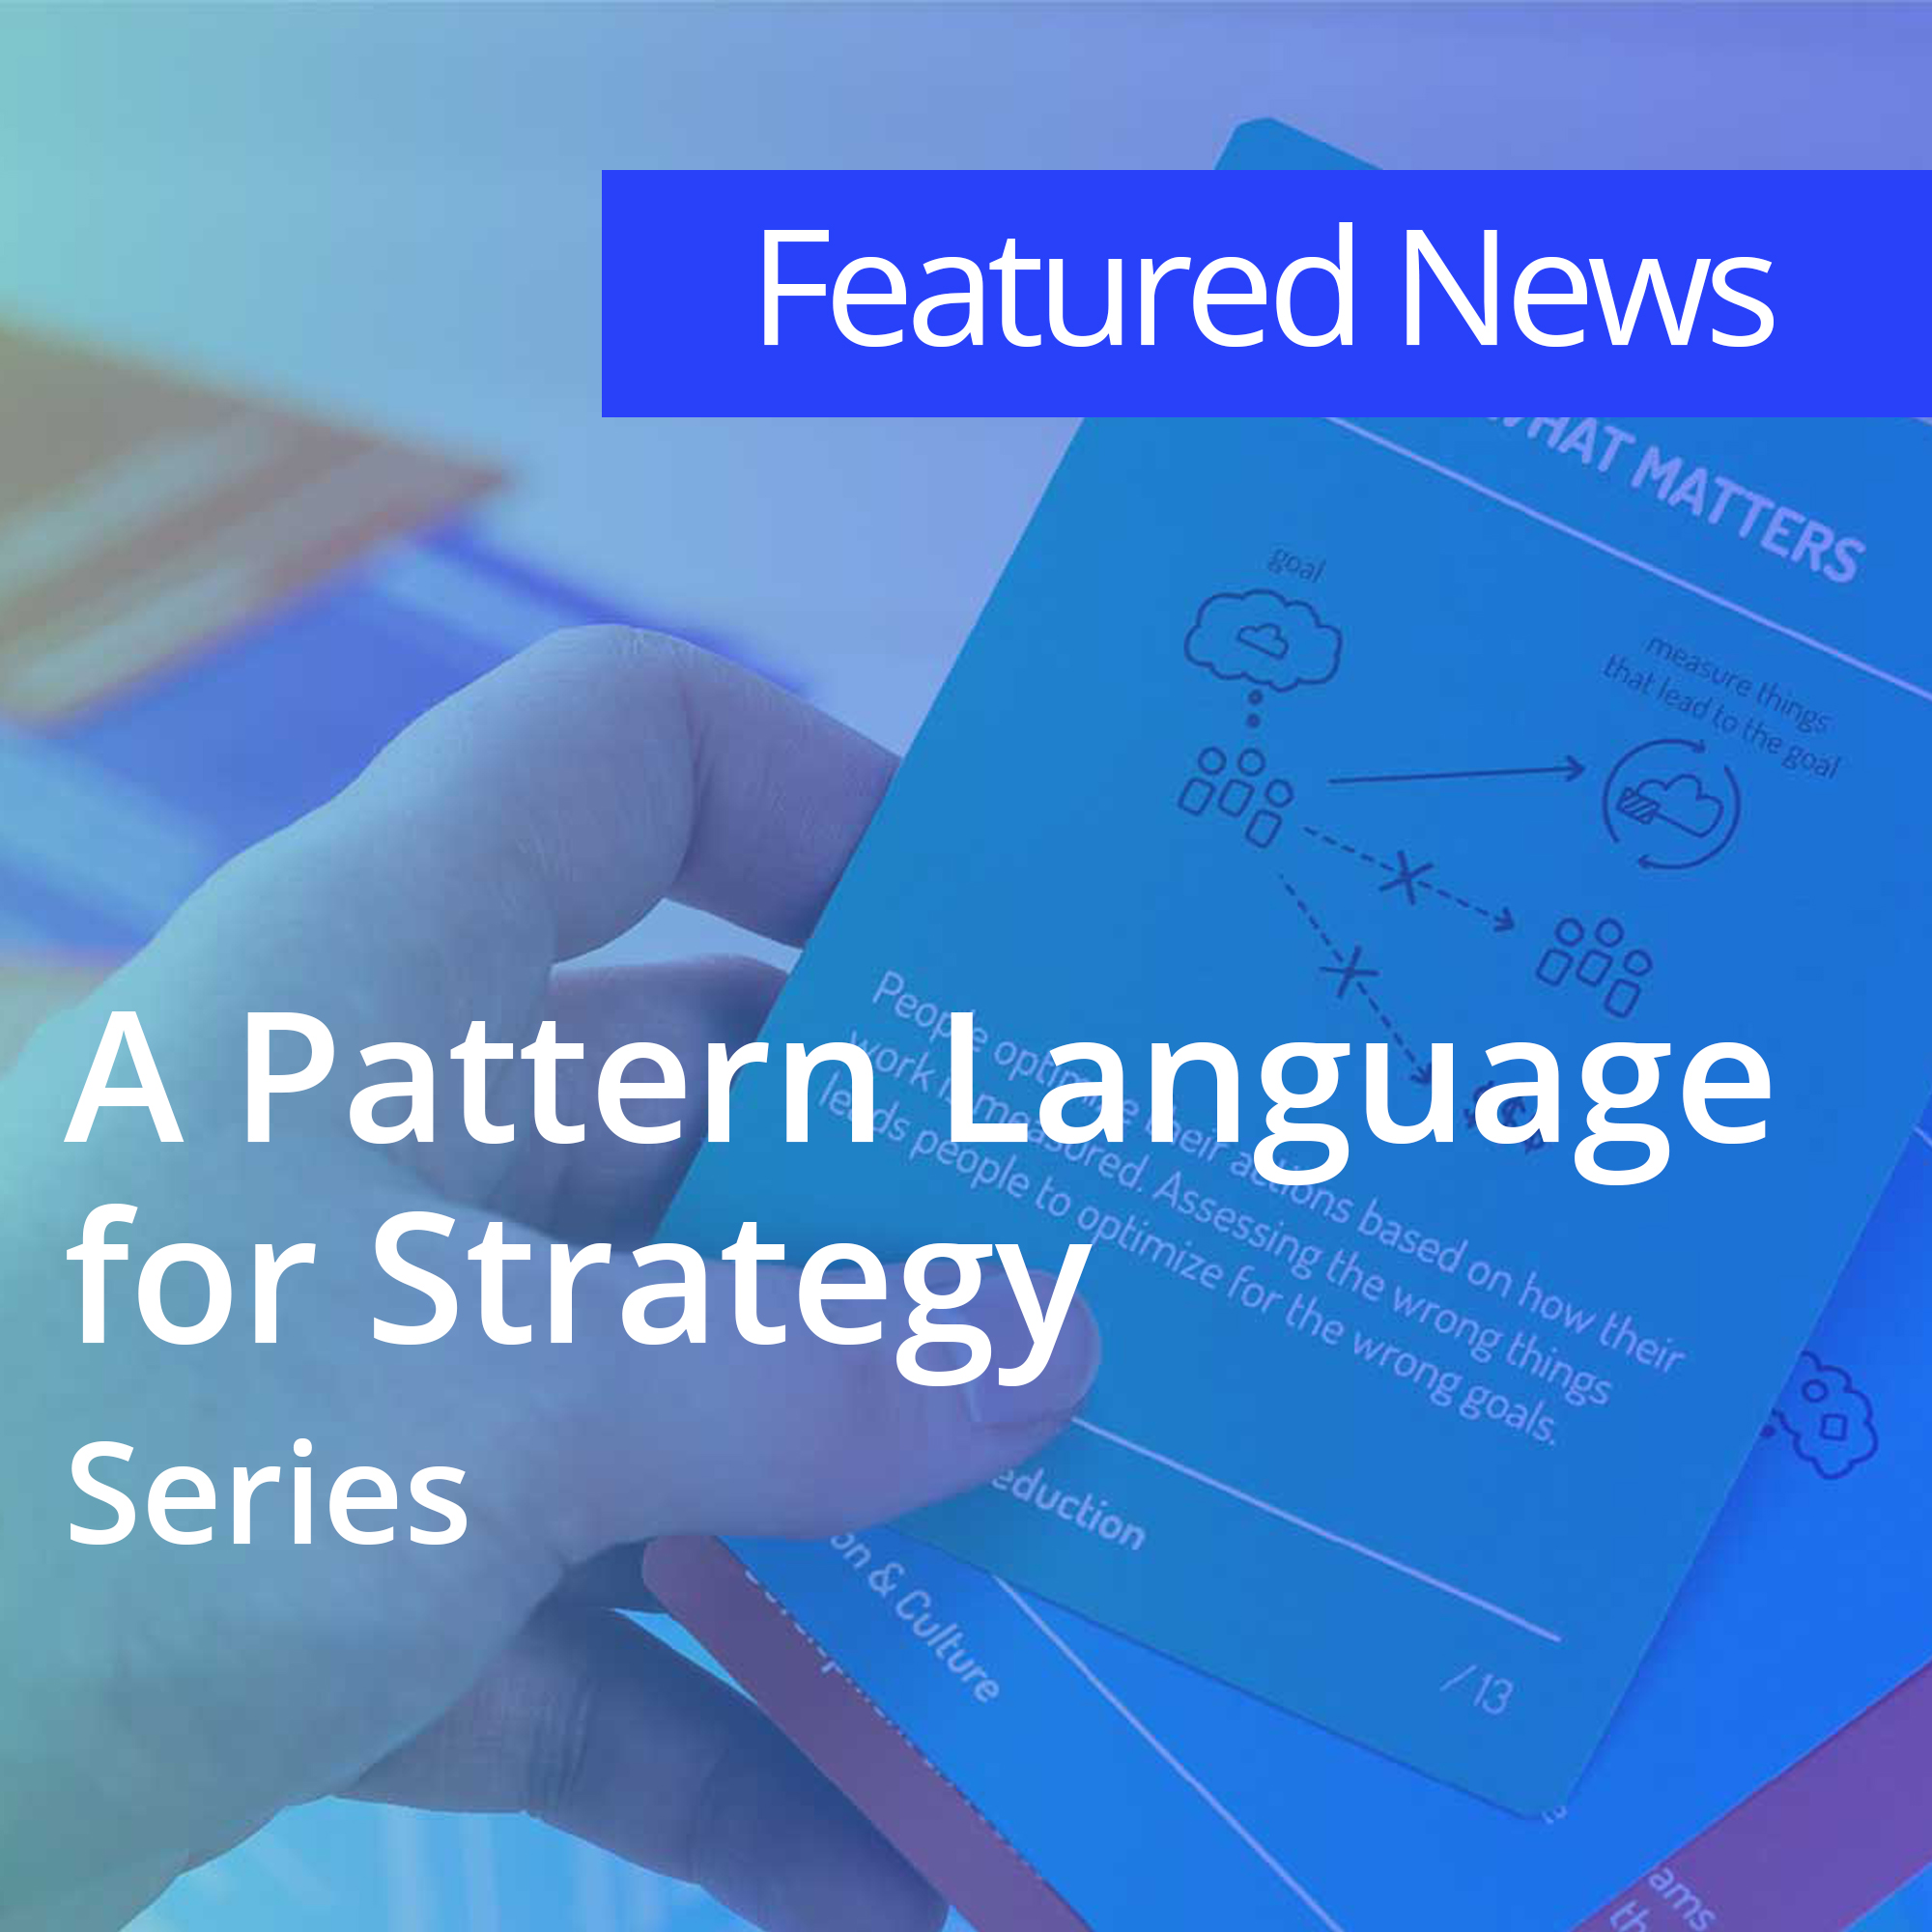 A Pattern Language for Strategy-2